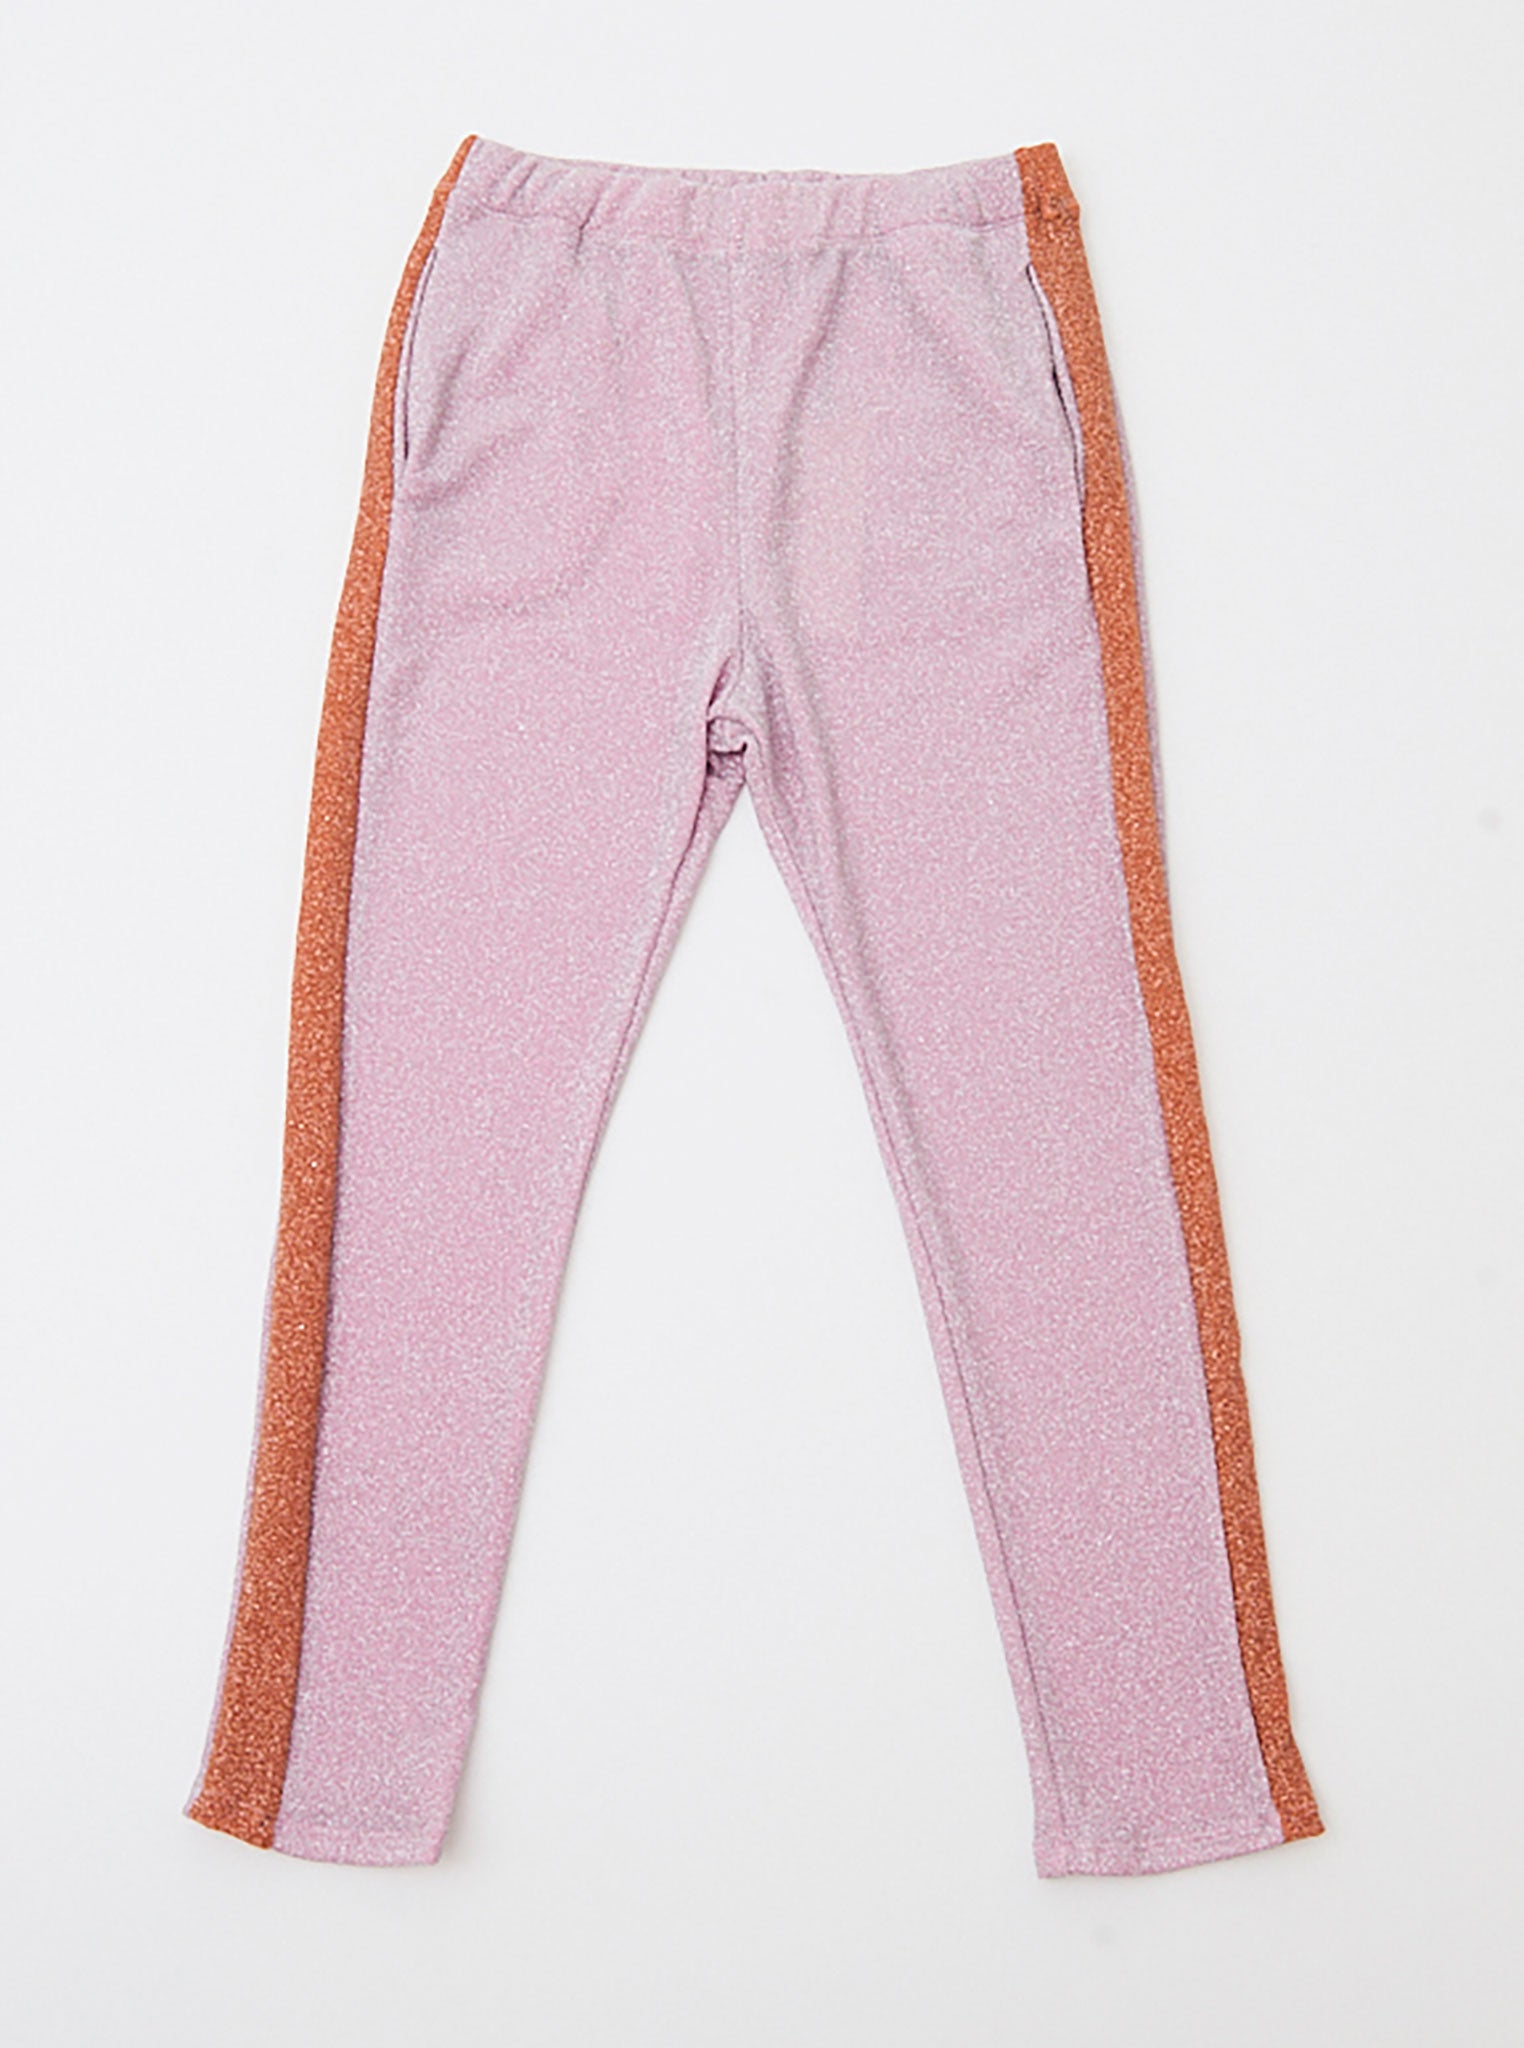 Vinti Andrews Metallic Pink Track Pants